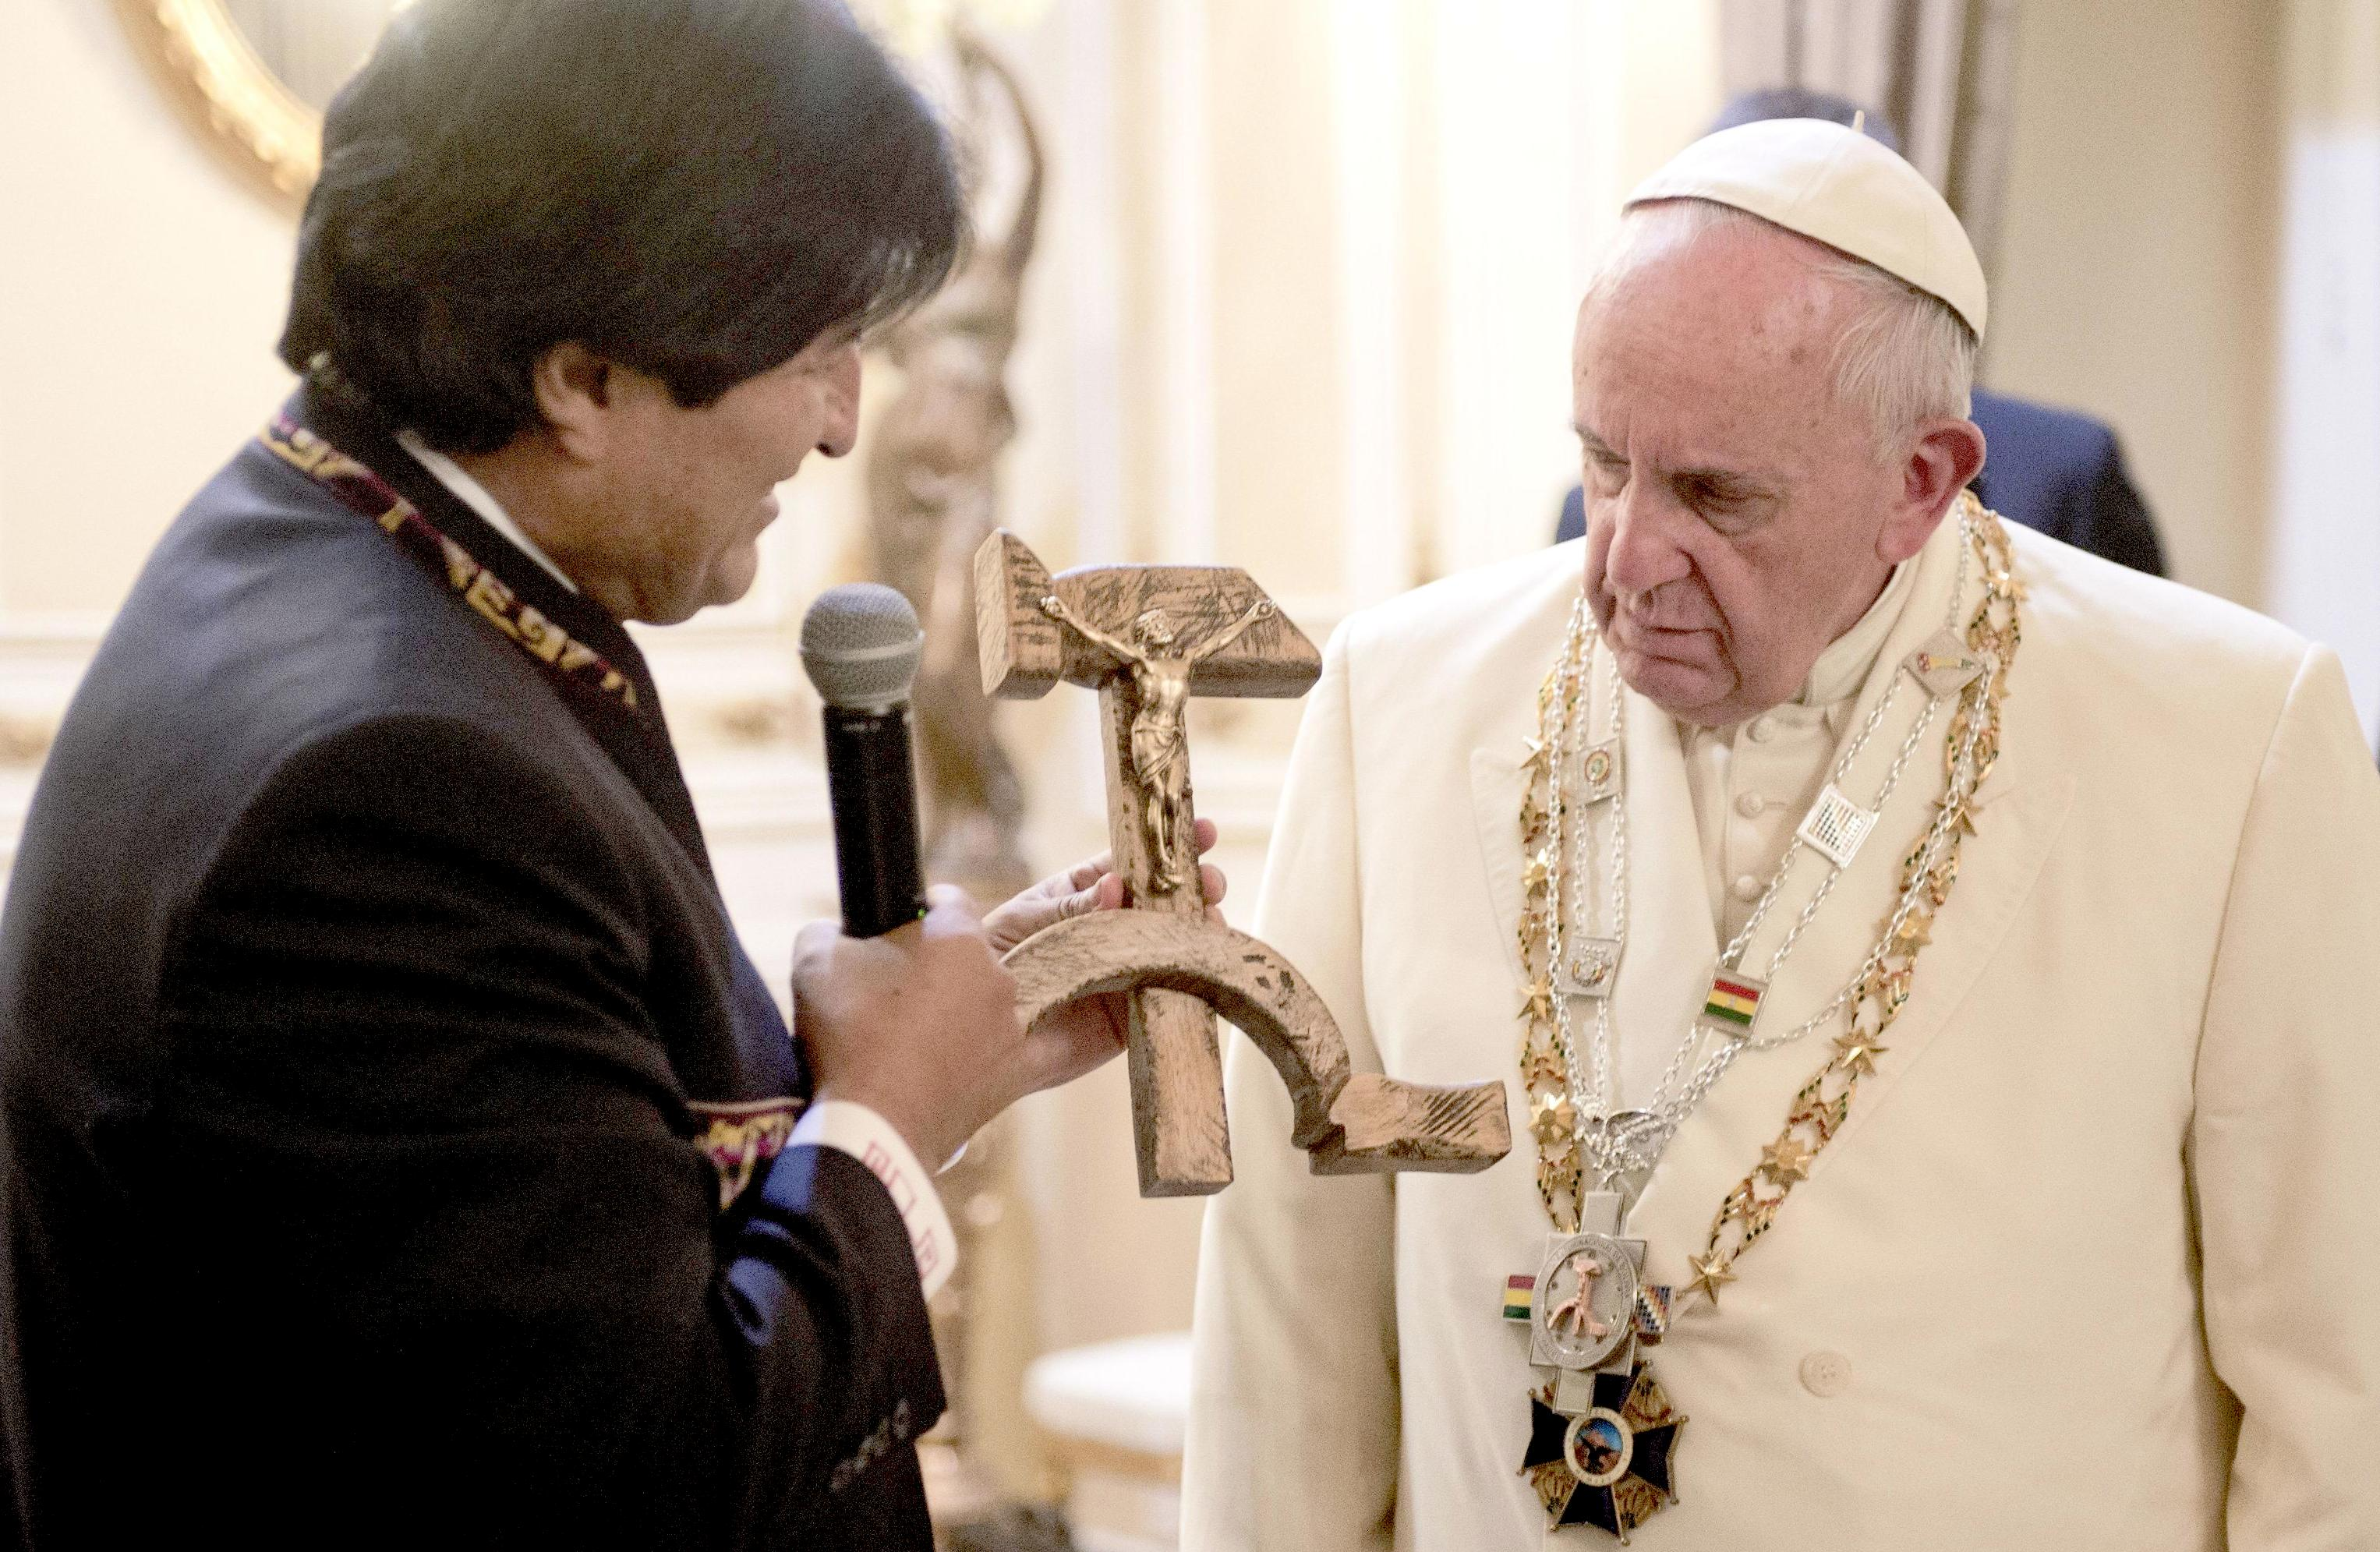 Crucifix carved into a wooden hammer and sickle given to Pope Francis by Bolivian President Evo Morales